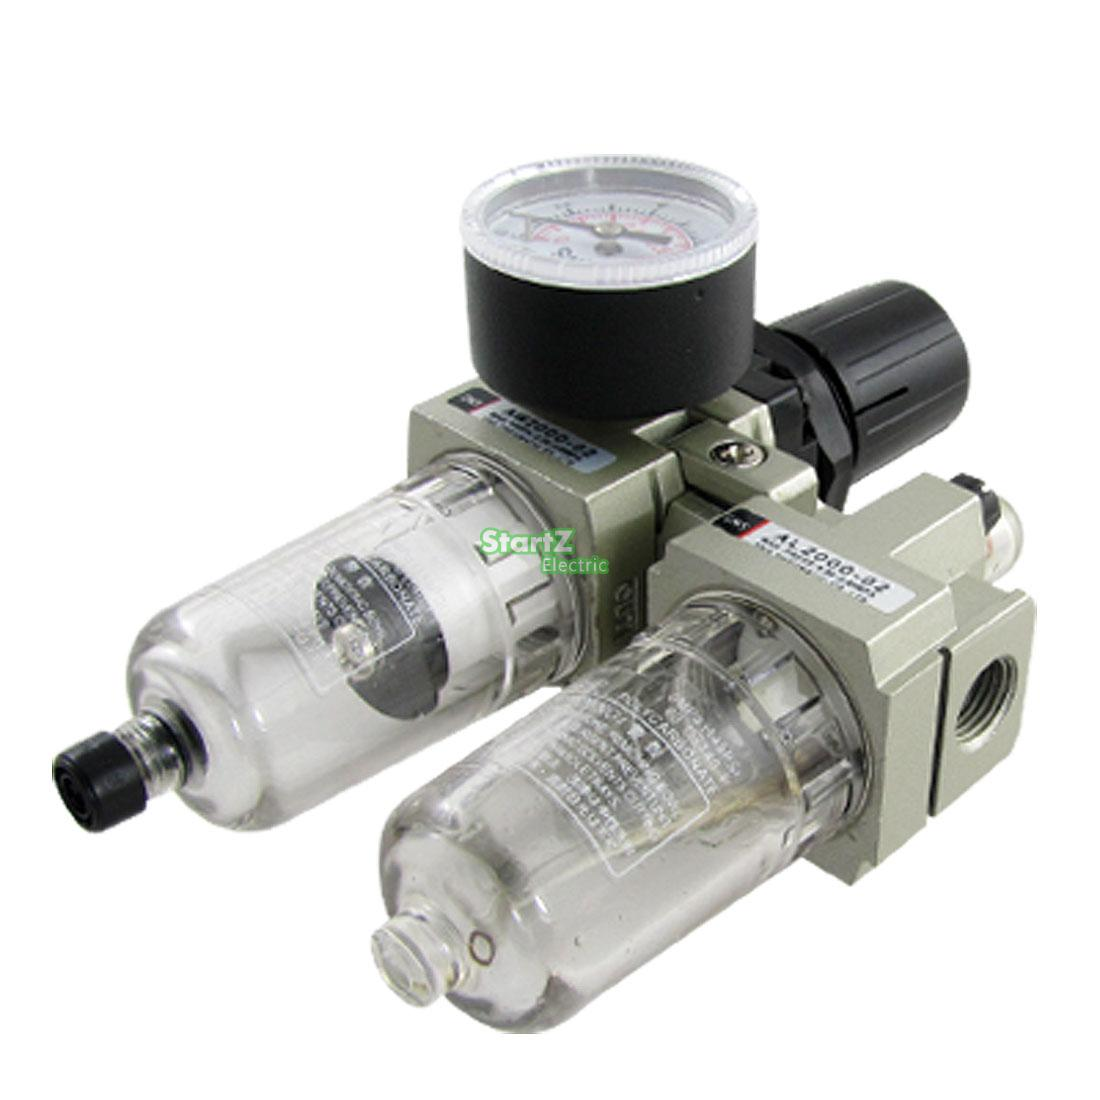 AC2010-02D SMC Automatic Drain type air filter pneumatic components gas source processor two joint oil-water separator ac5010 10d 1 pt smc auto drain type air filter sns pneumatic components gas source processor two joint oil water separator